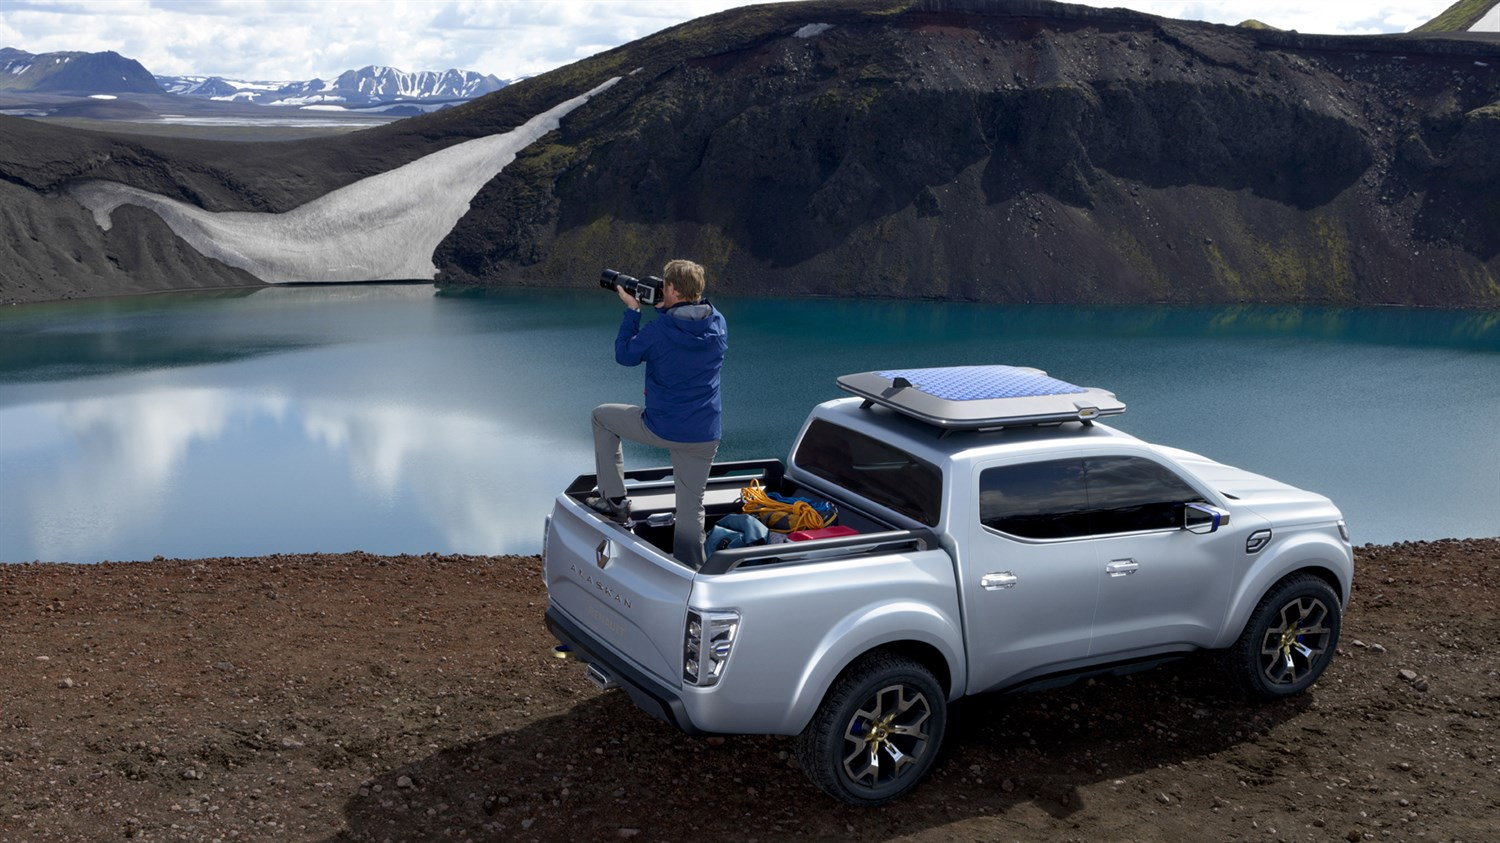 Renault ALASKAN Concept - 3/4 rear view - The ideal partner for an exploratory photographer